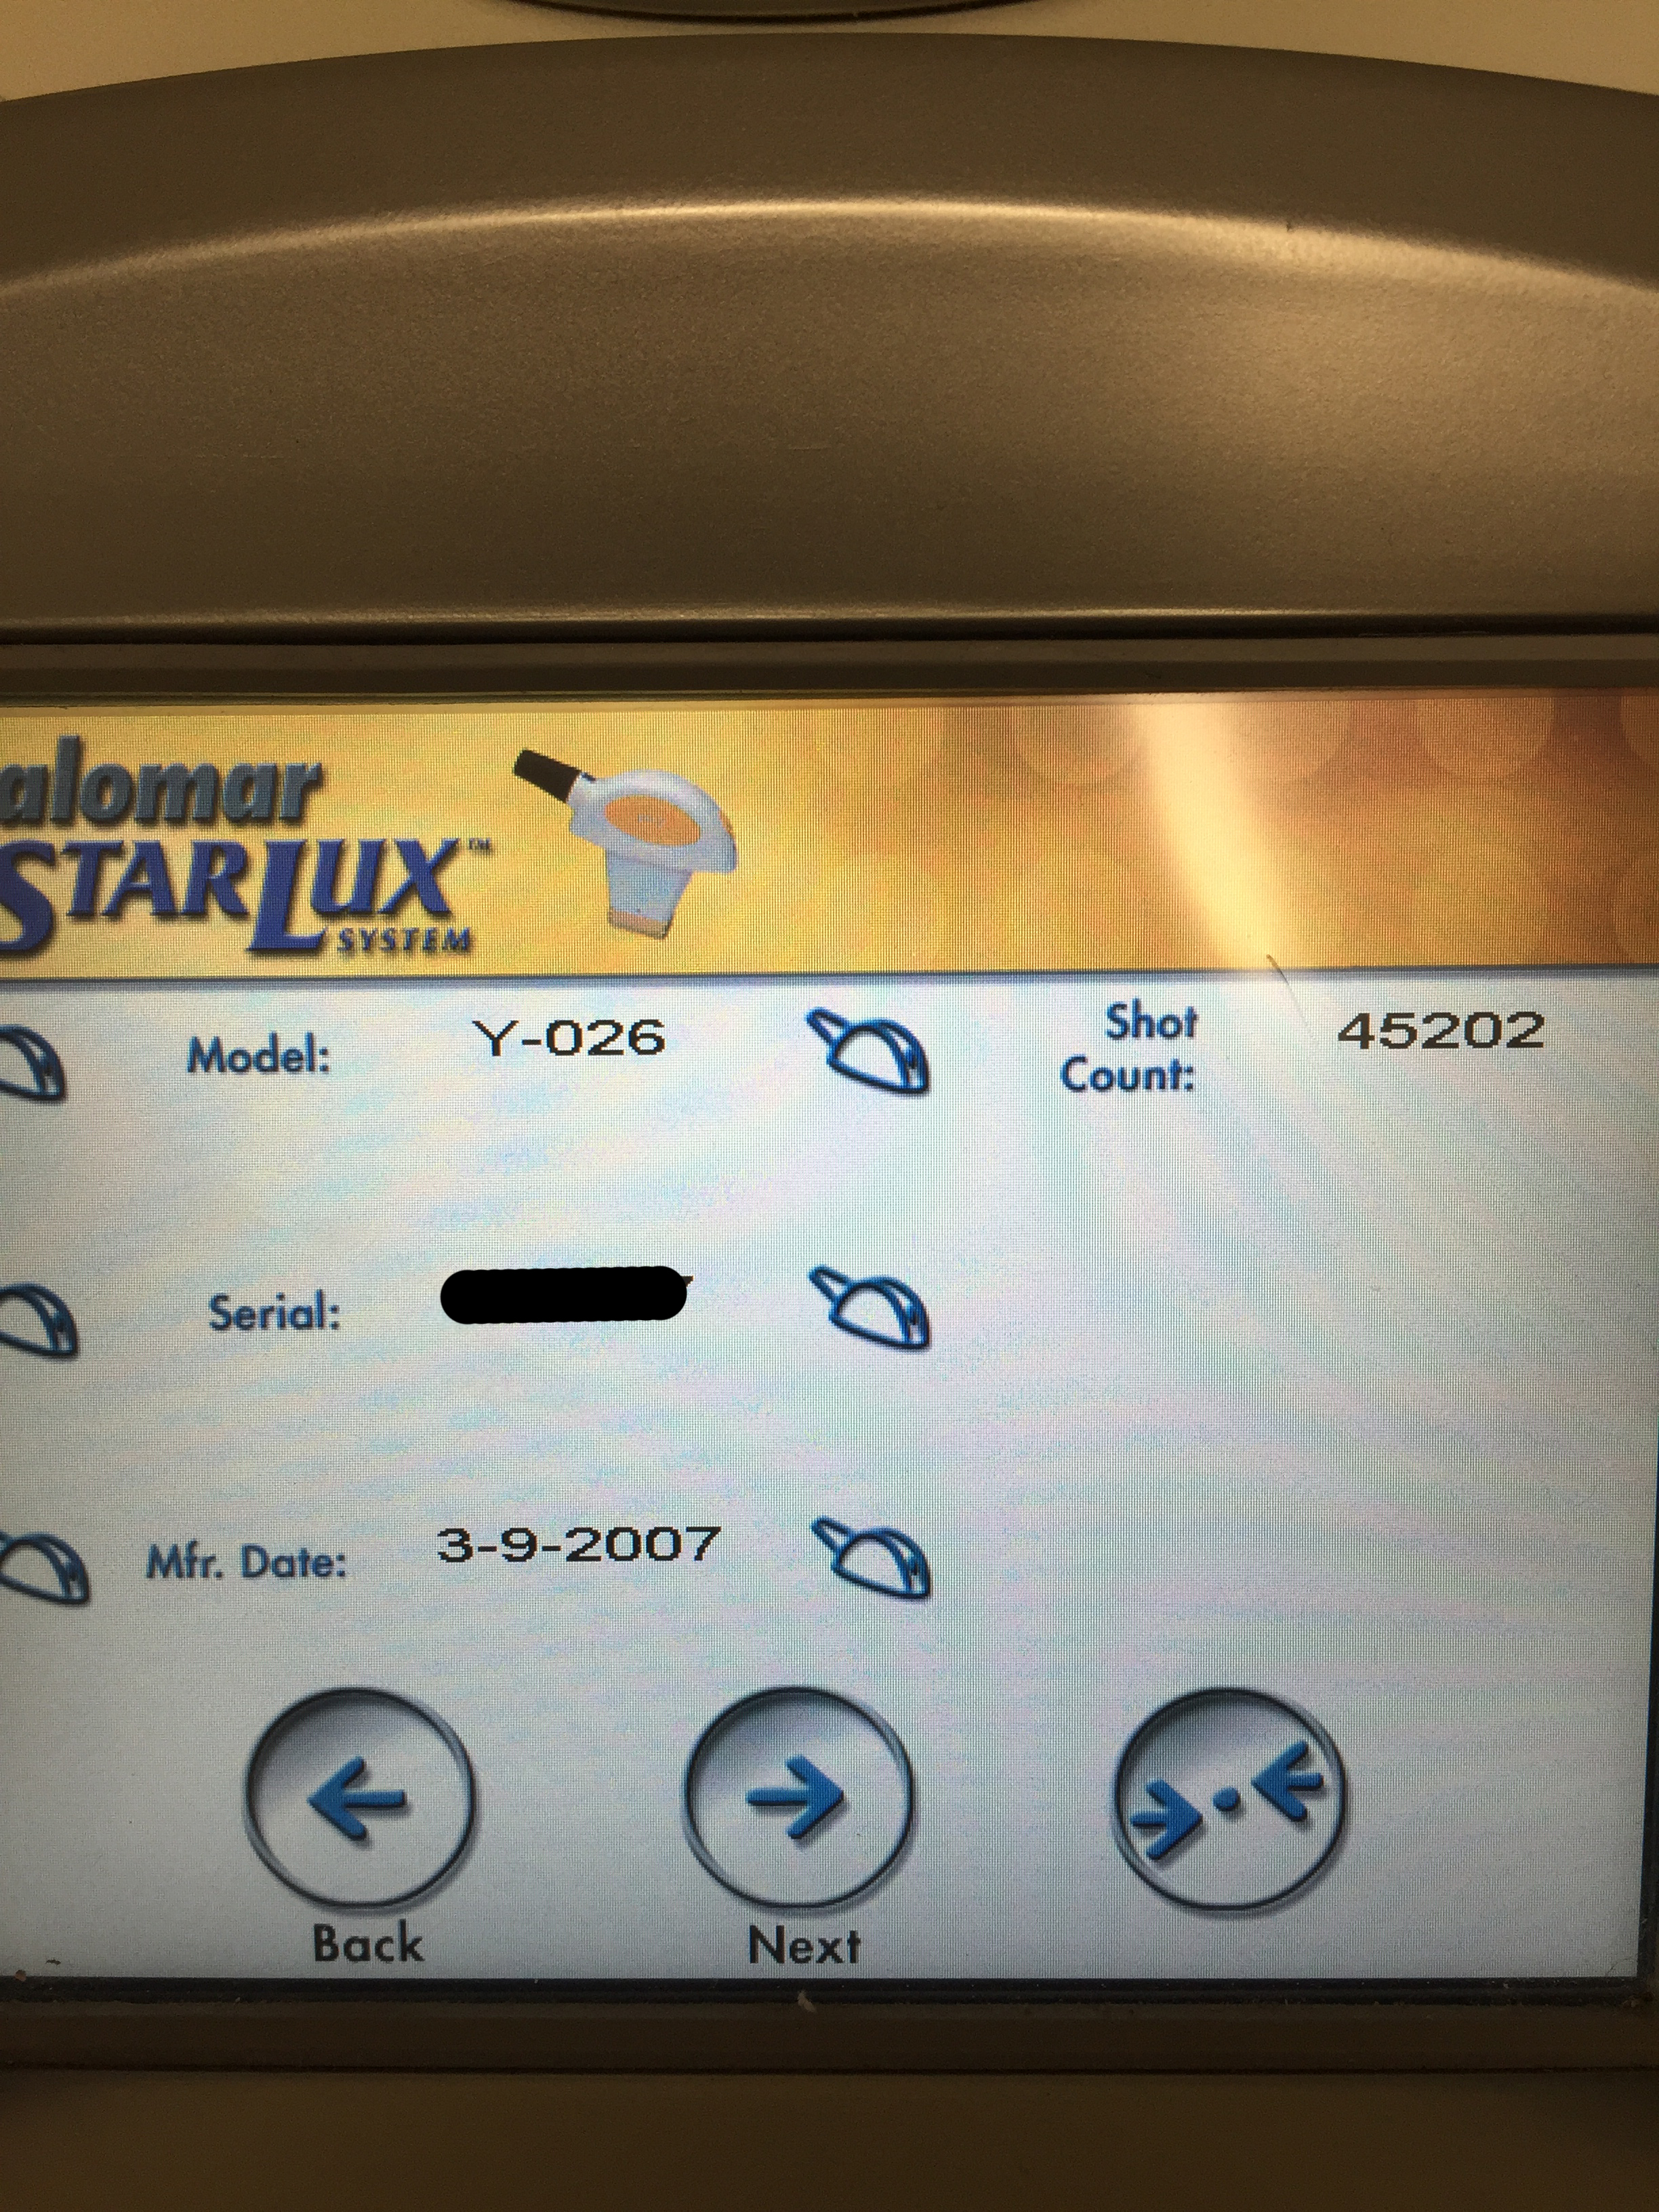 2008 Palomar Starlux 500 with 4 Handpieces: LuxRs, LuxY, MaxG, Lux1540